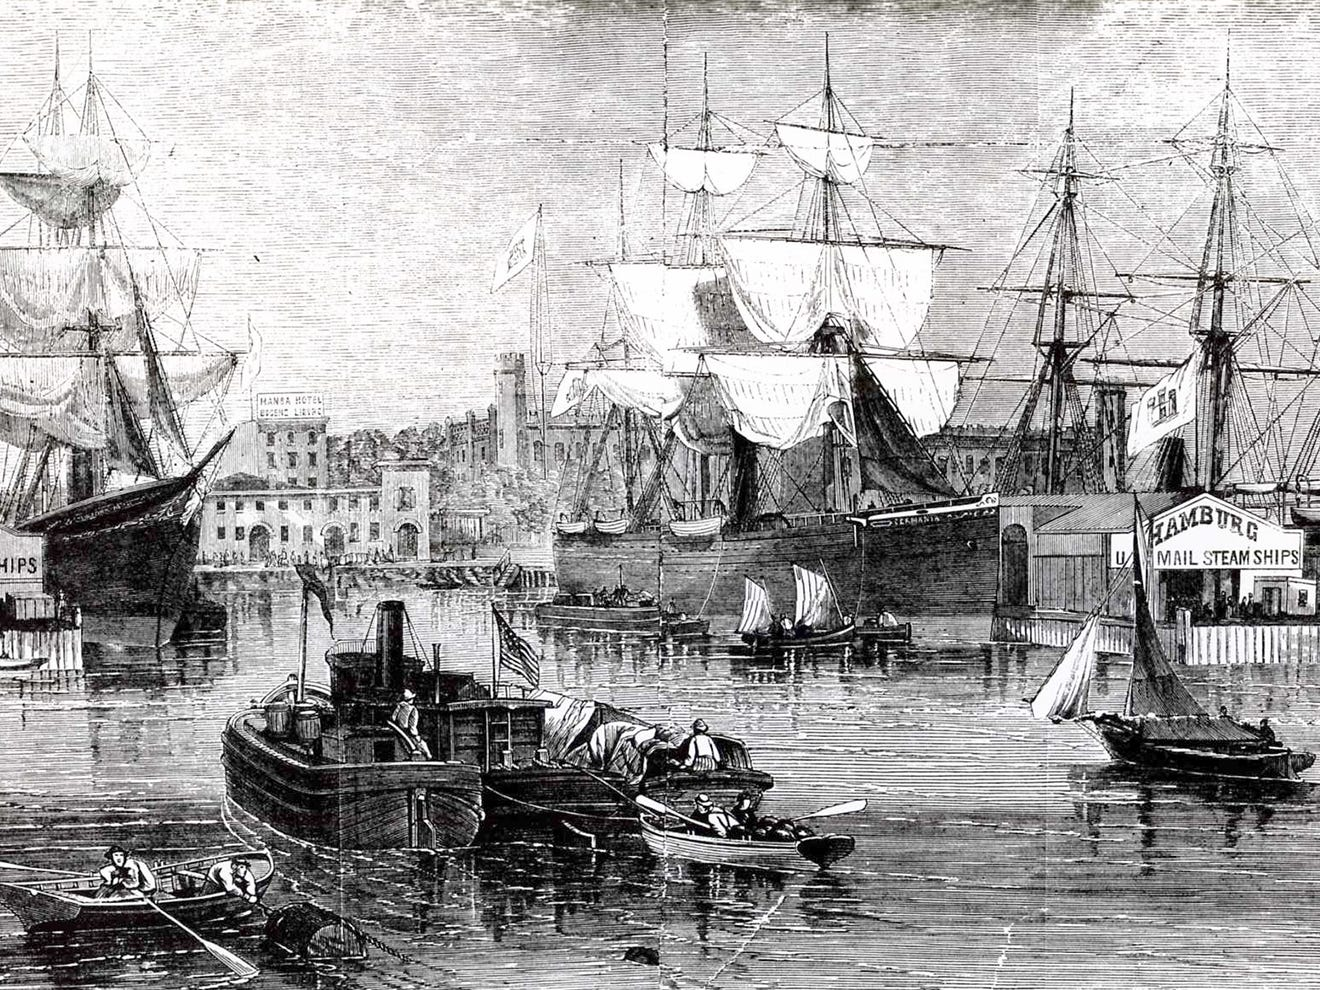 Hoboken was a busy port in 1865. This rendering shows ships at the waterfront near the North German Lloyd line at left, and the shops of the Hamburg-American Packet Company at right.